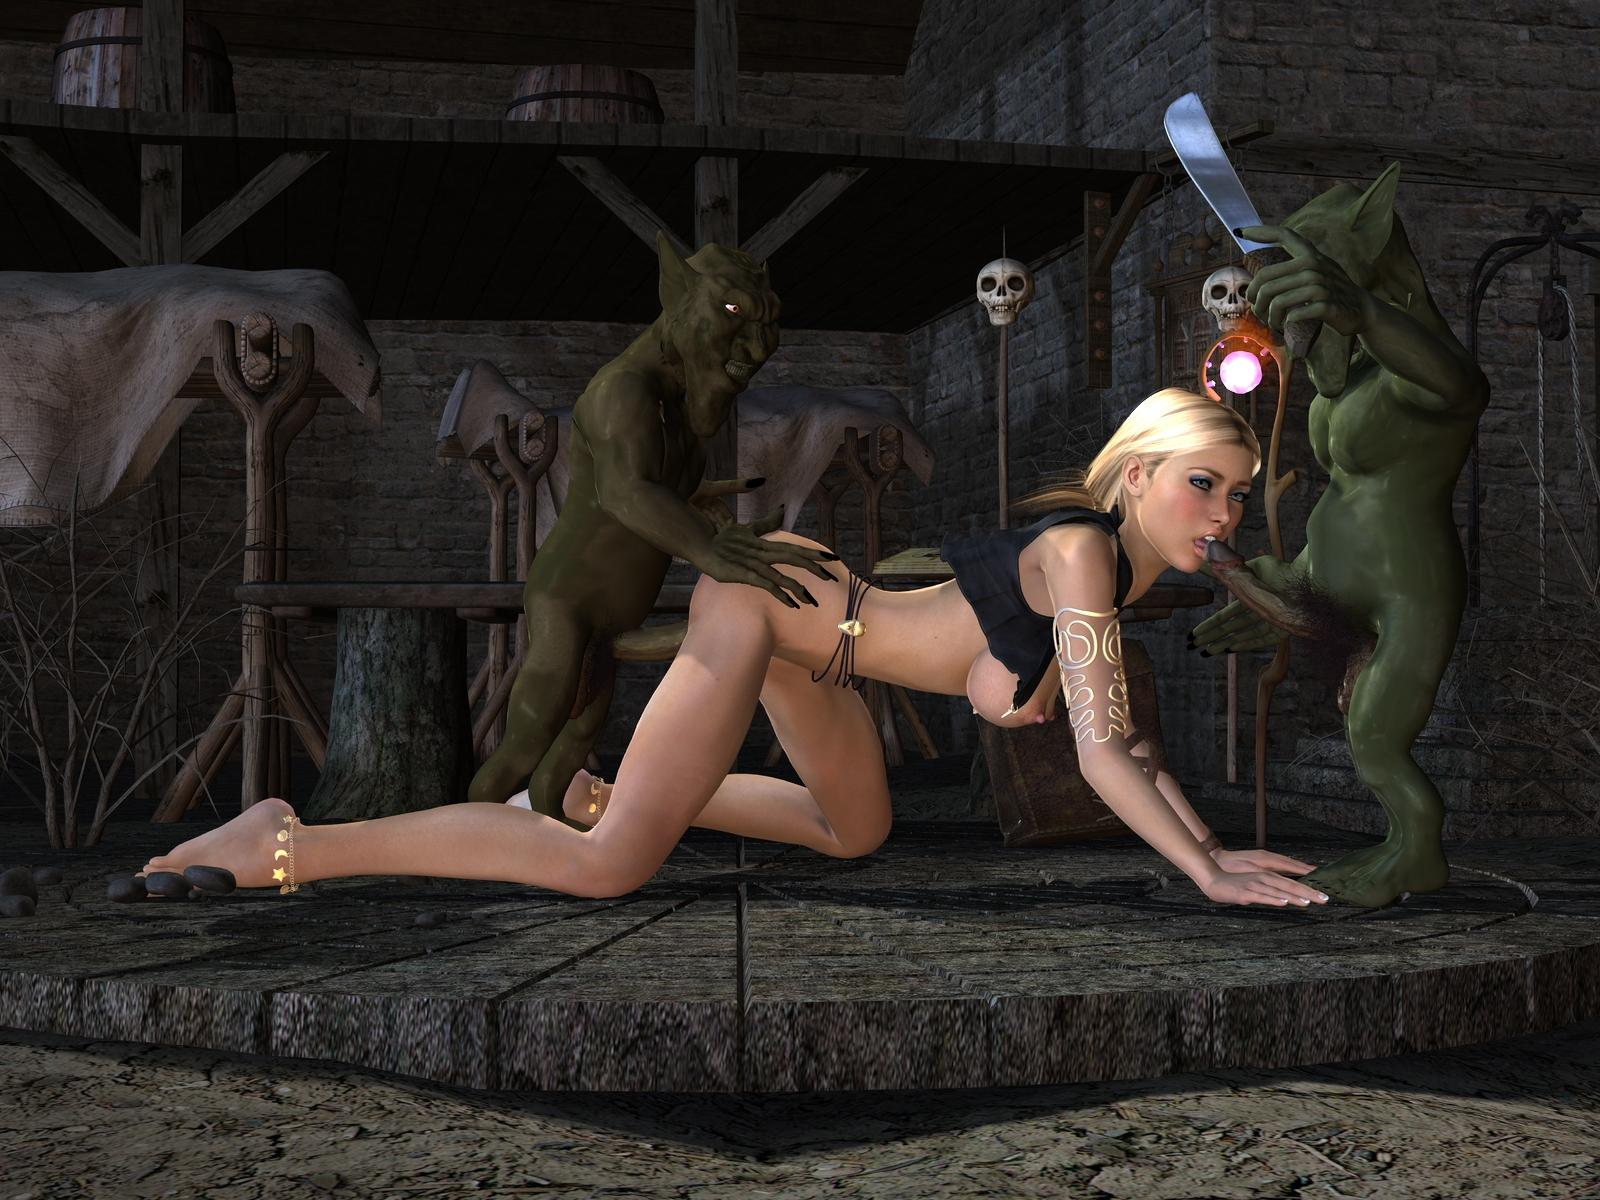 Sex story with goblins porno stripper